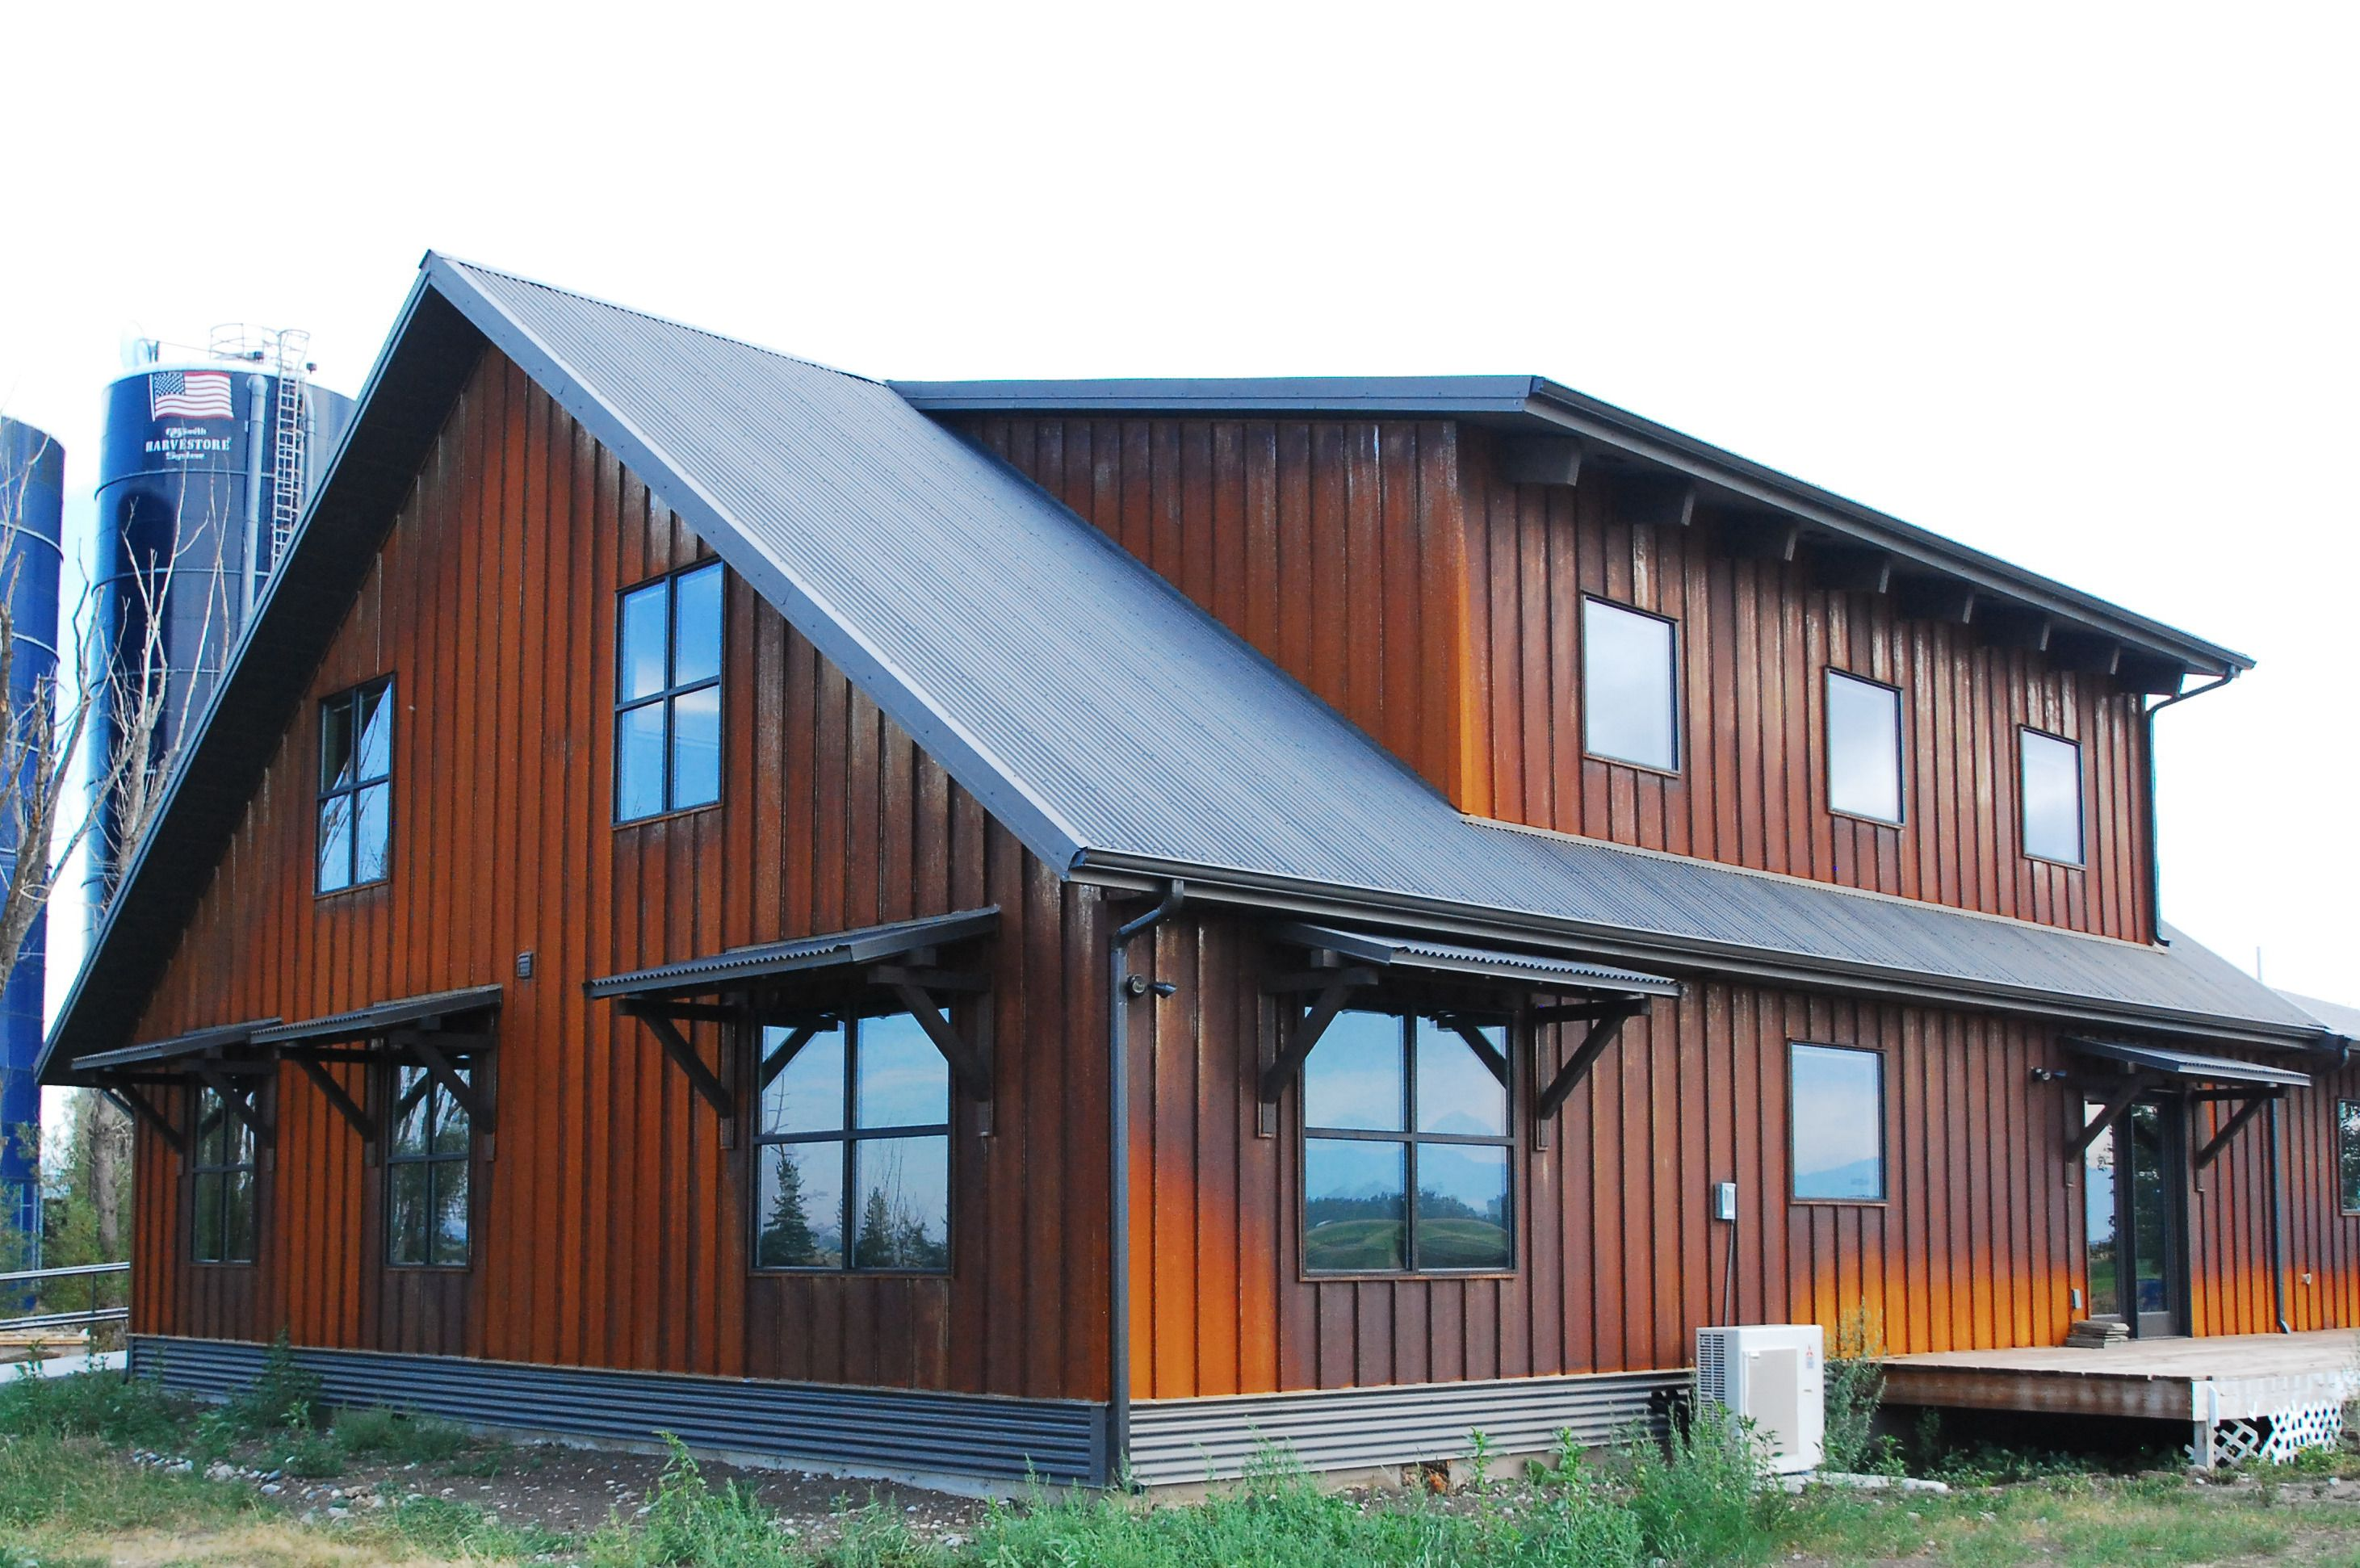 Metal House Designs In Recent Times There Are So Many Innovations Surfacing And One